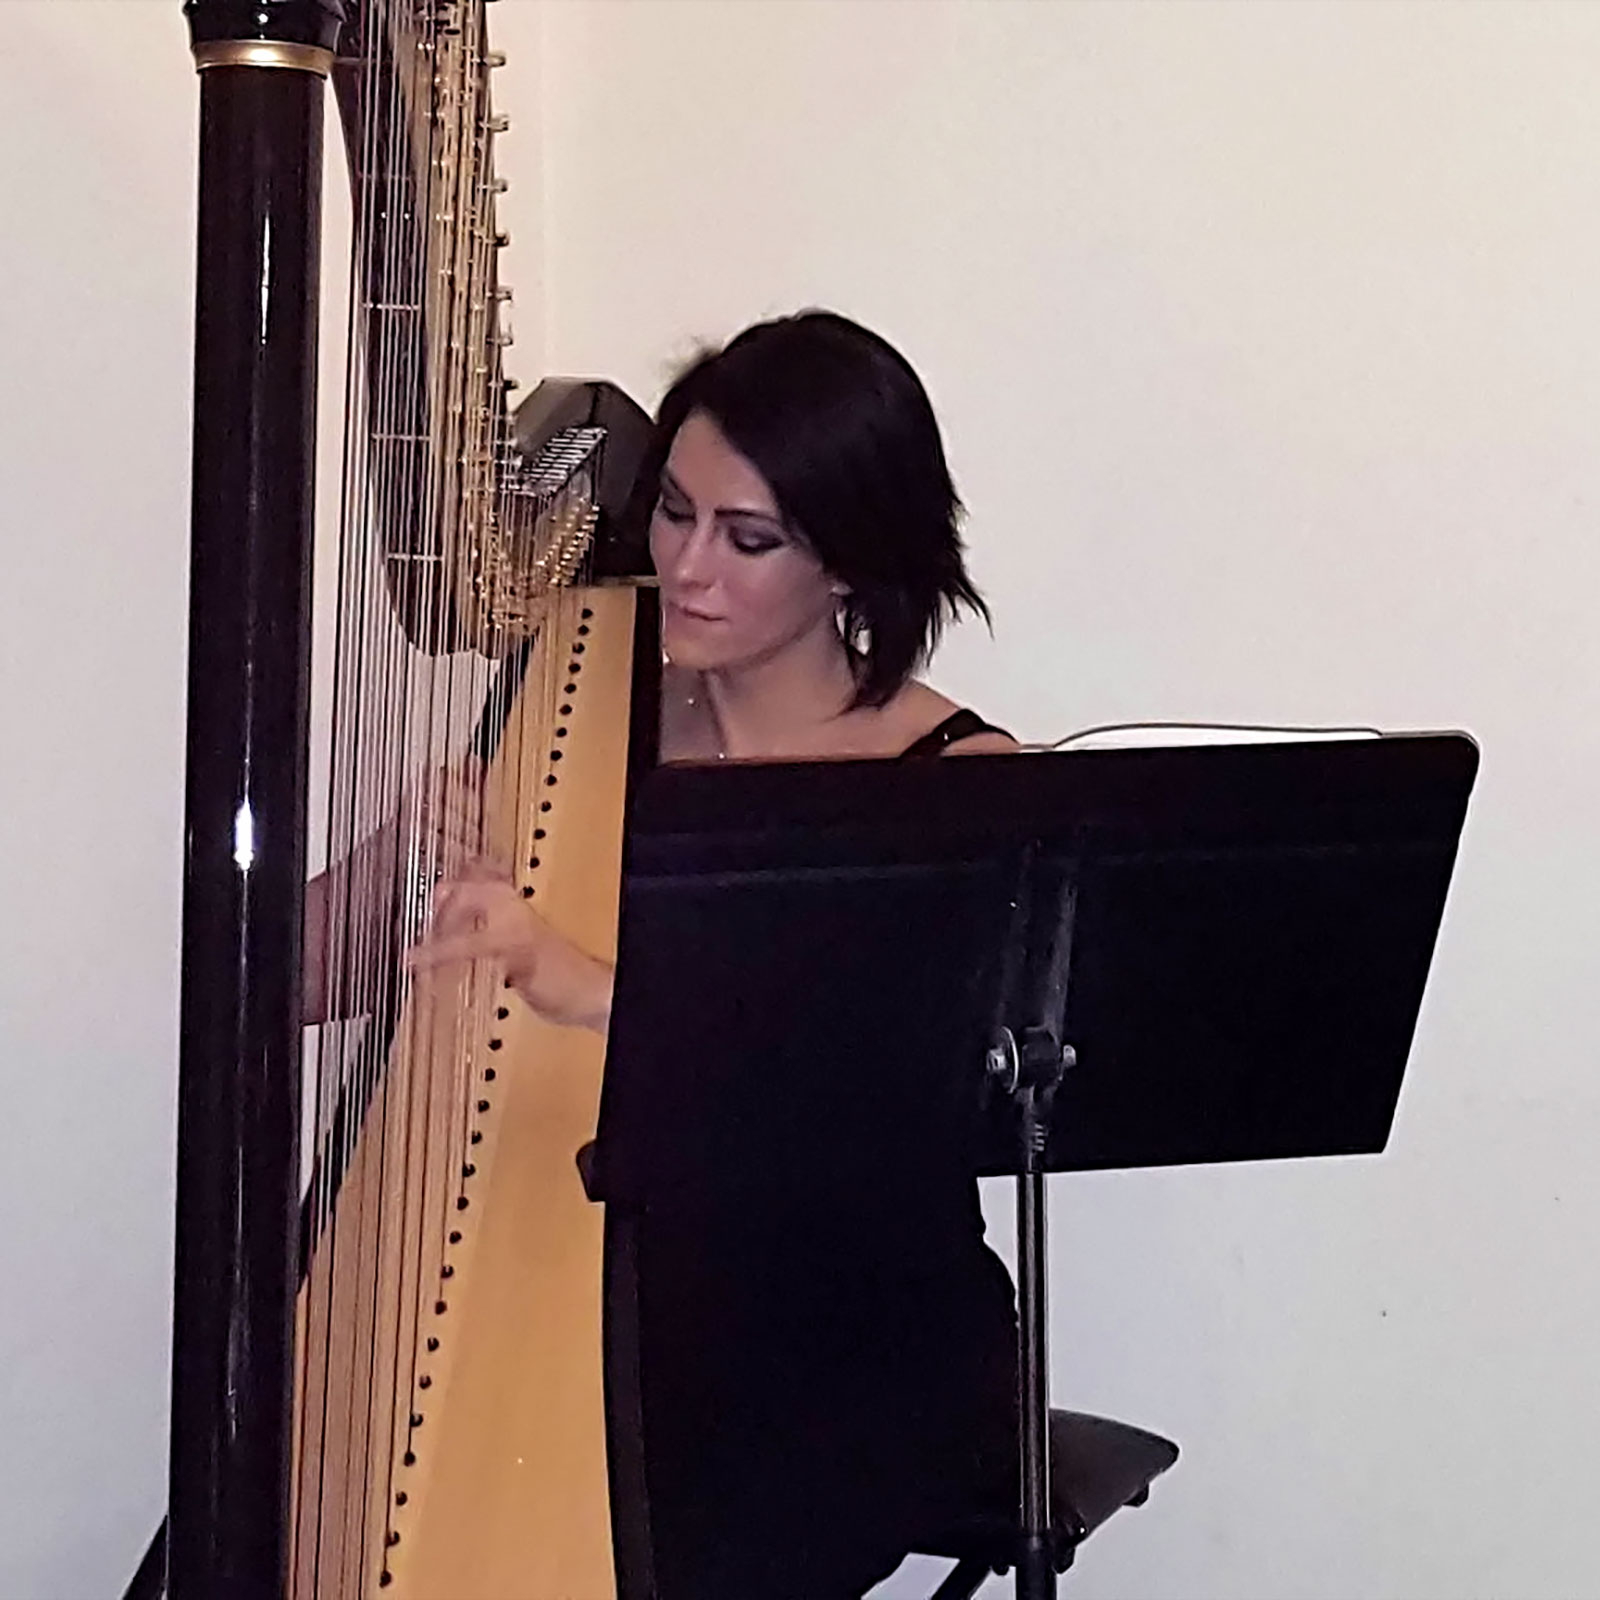 We were entertained by a harpist during the Dinner for the Dead photo by Candelo Kimbisa